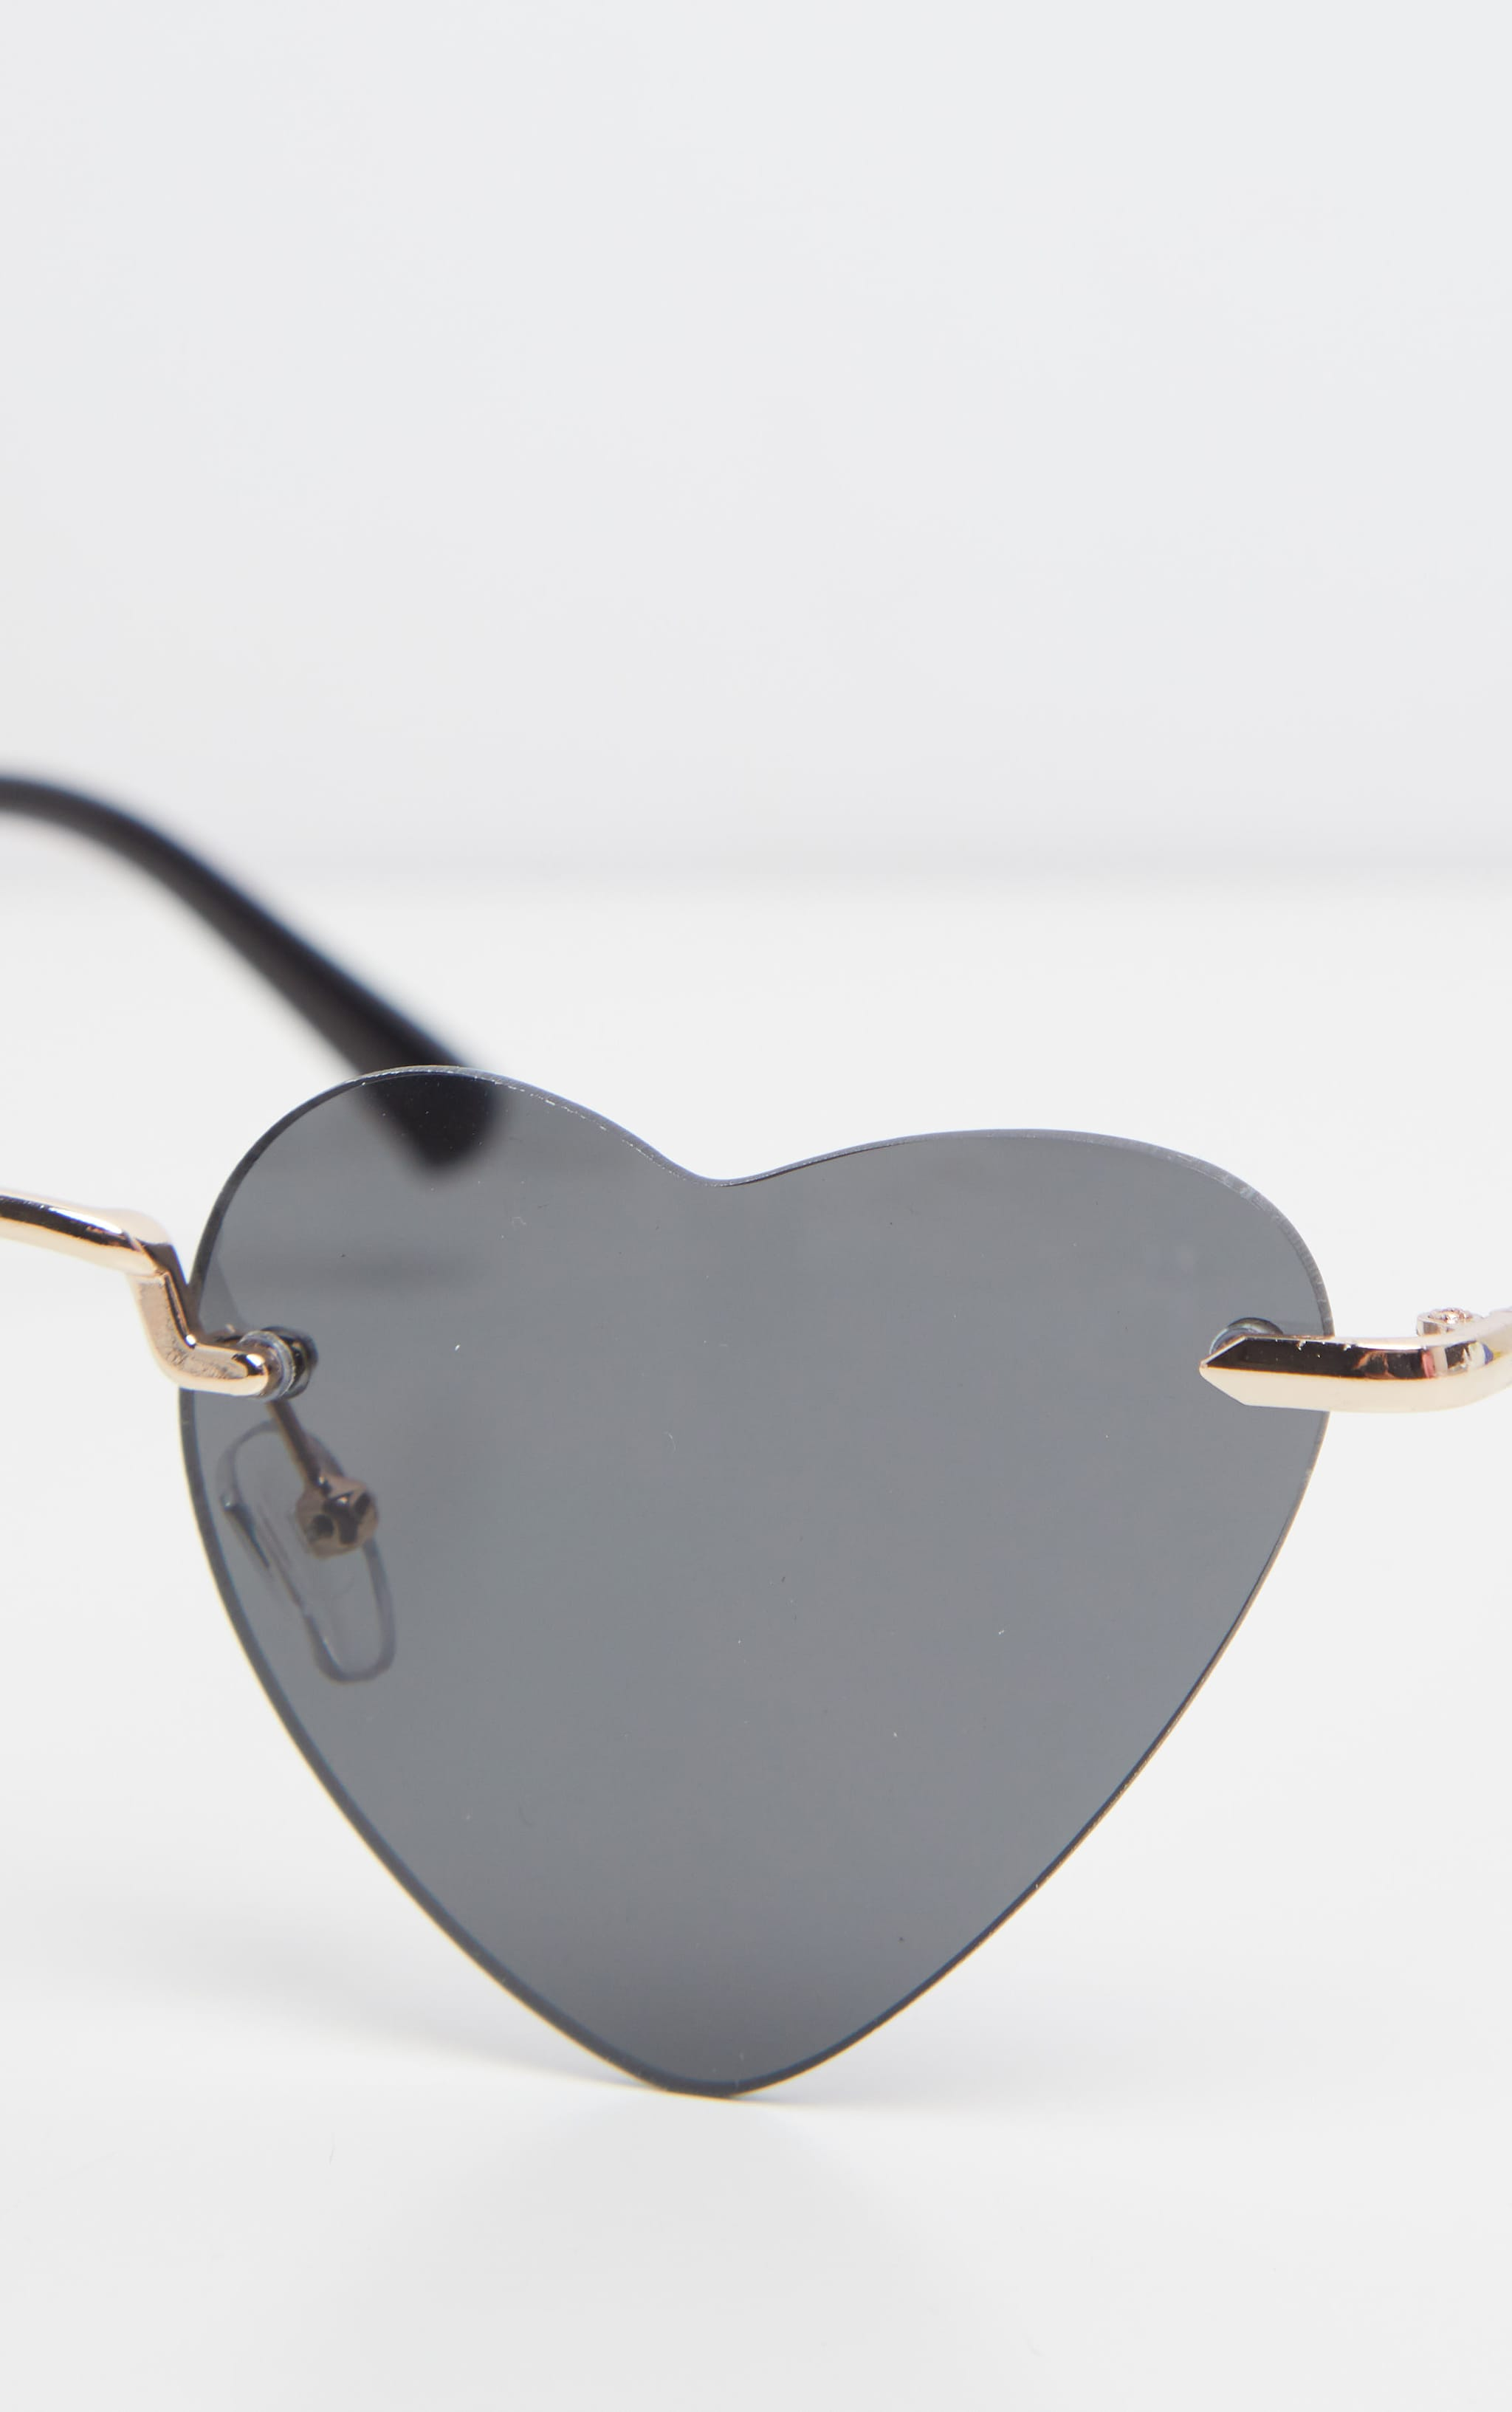 Black Heart Shaped Sunglasses 4